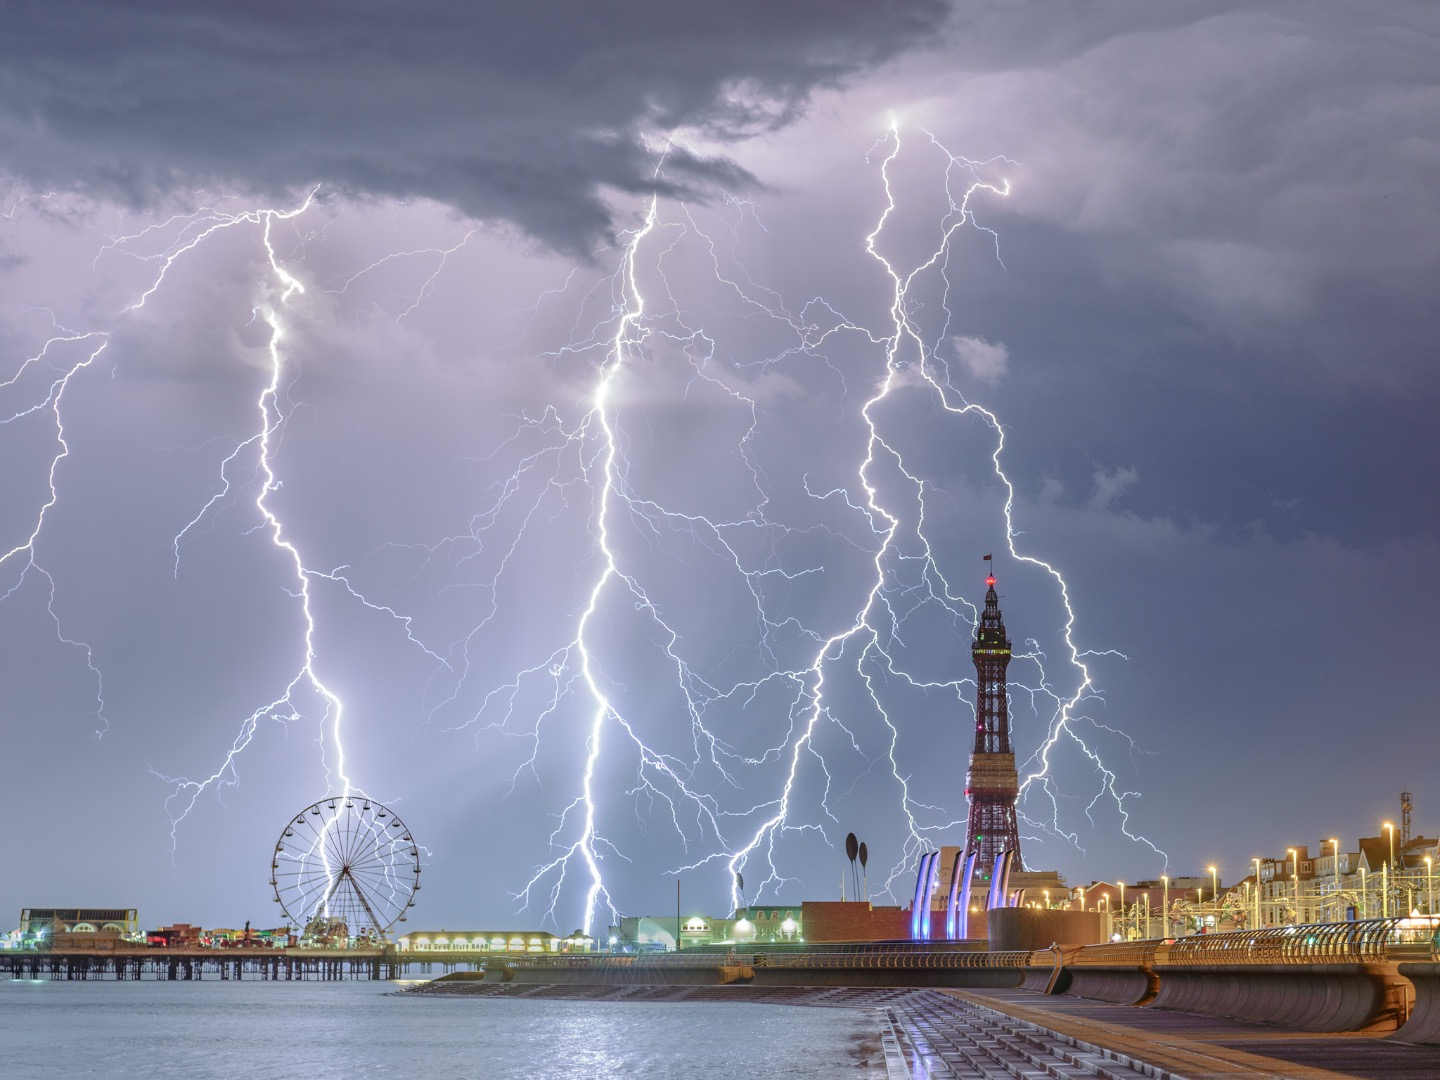 Electric Blackpool by Stephen Cheatle